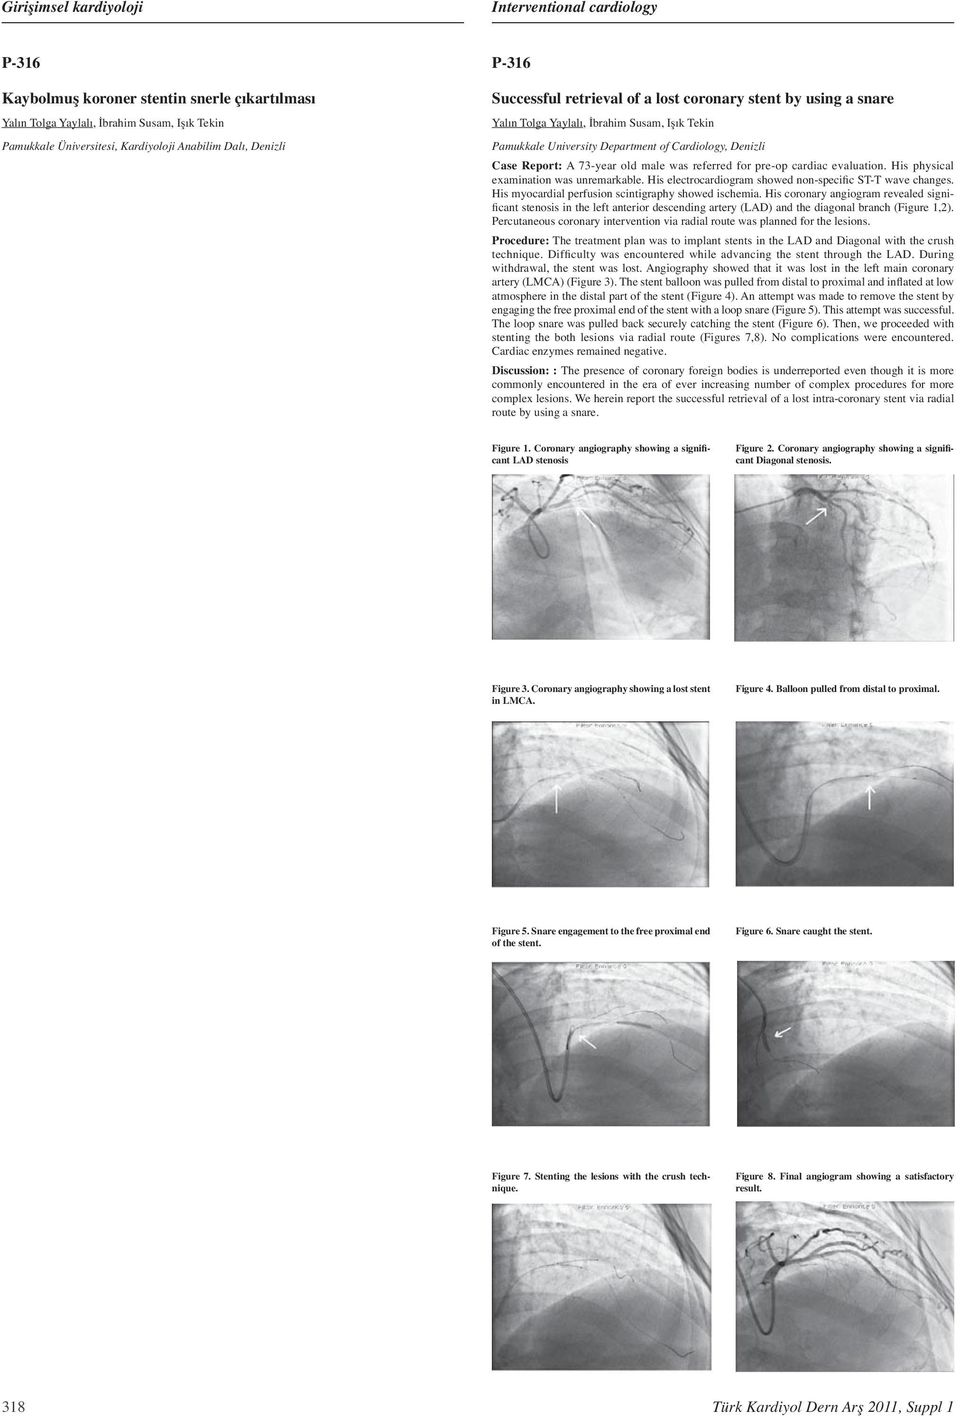 His physical examination was unremarkable. His electrocardiogram showed non-specific ST-T wave changes. His myocardial perfusion scintigraphy showed ischemia.